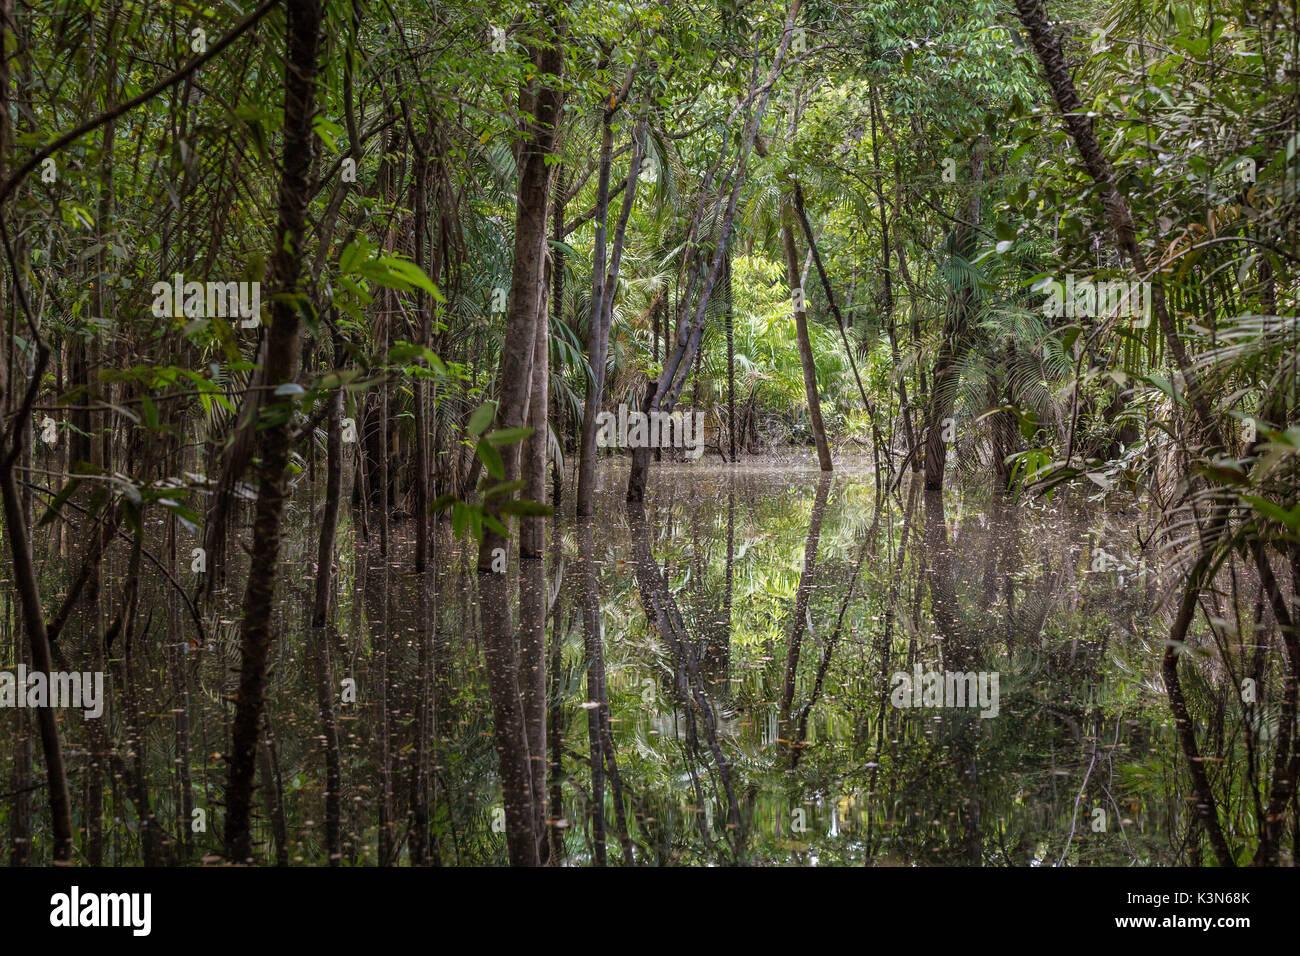 The flooded forest of the Rio negro Basin depicted in early August when the water level is still high and floods large area of the primary forest. Amazonas; Amazonia; Manaus; Brazil. - Stock Image